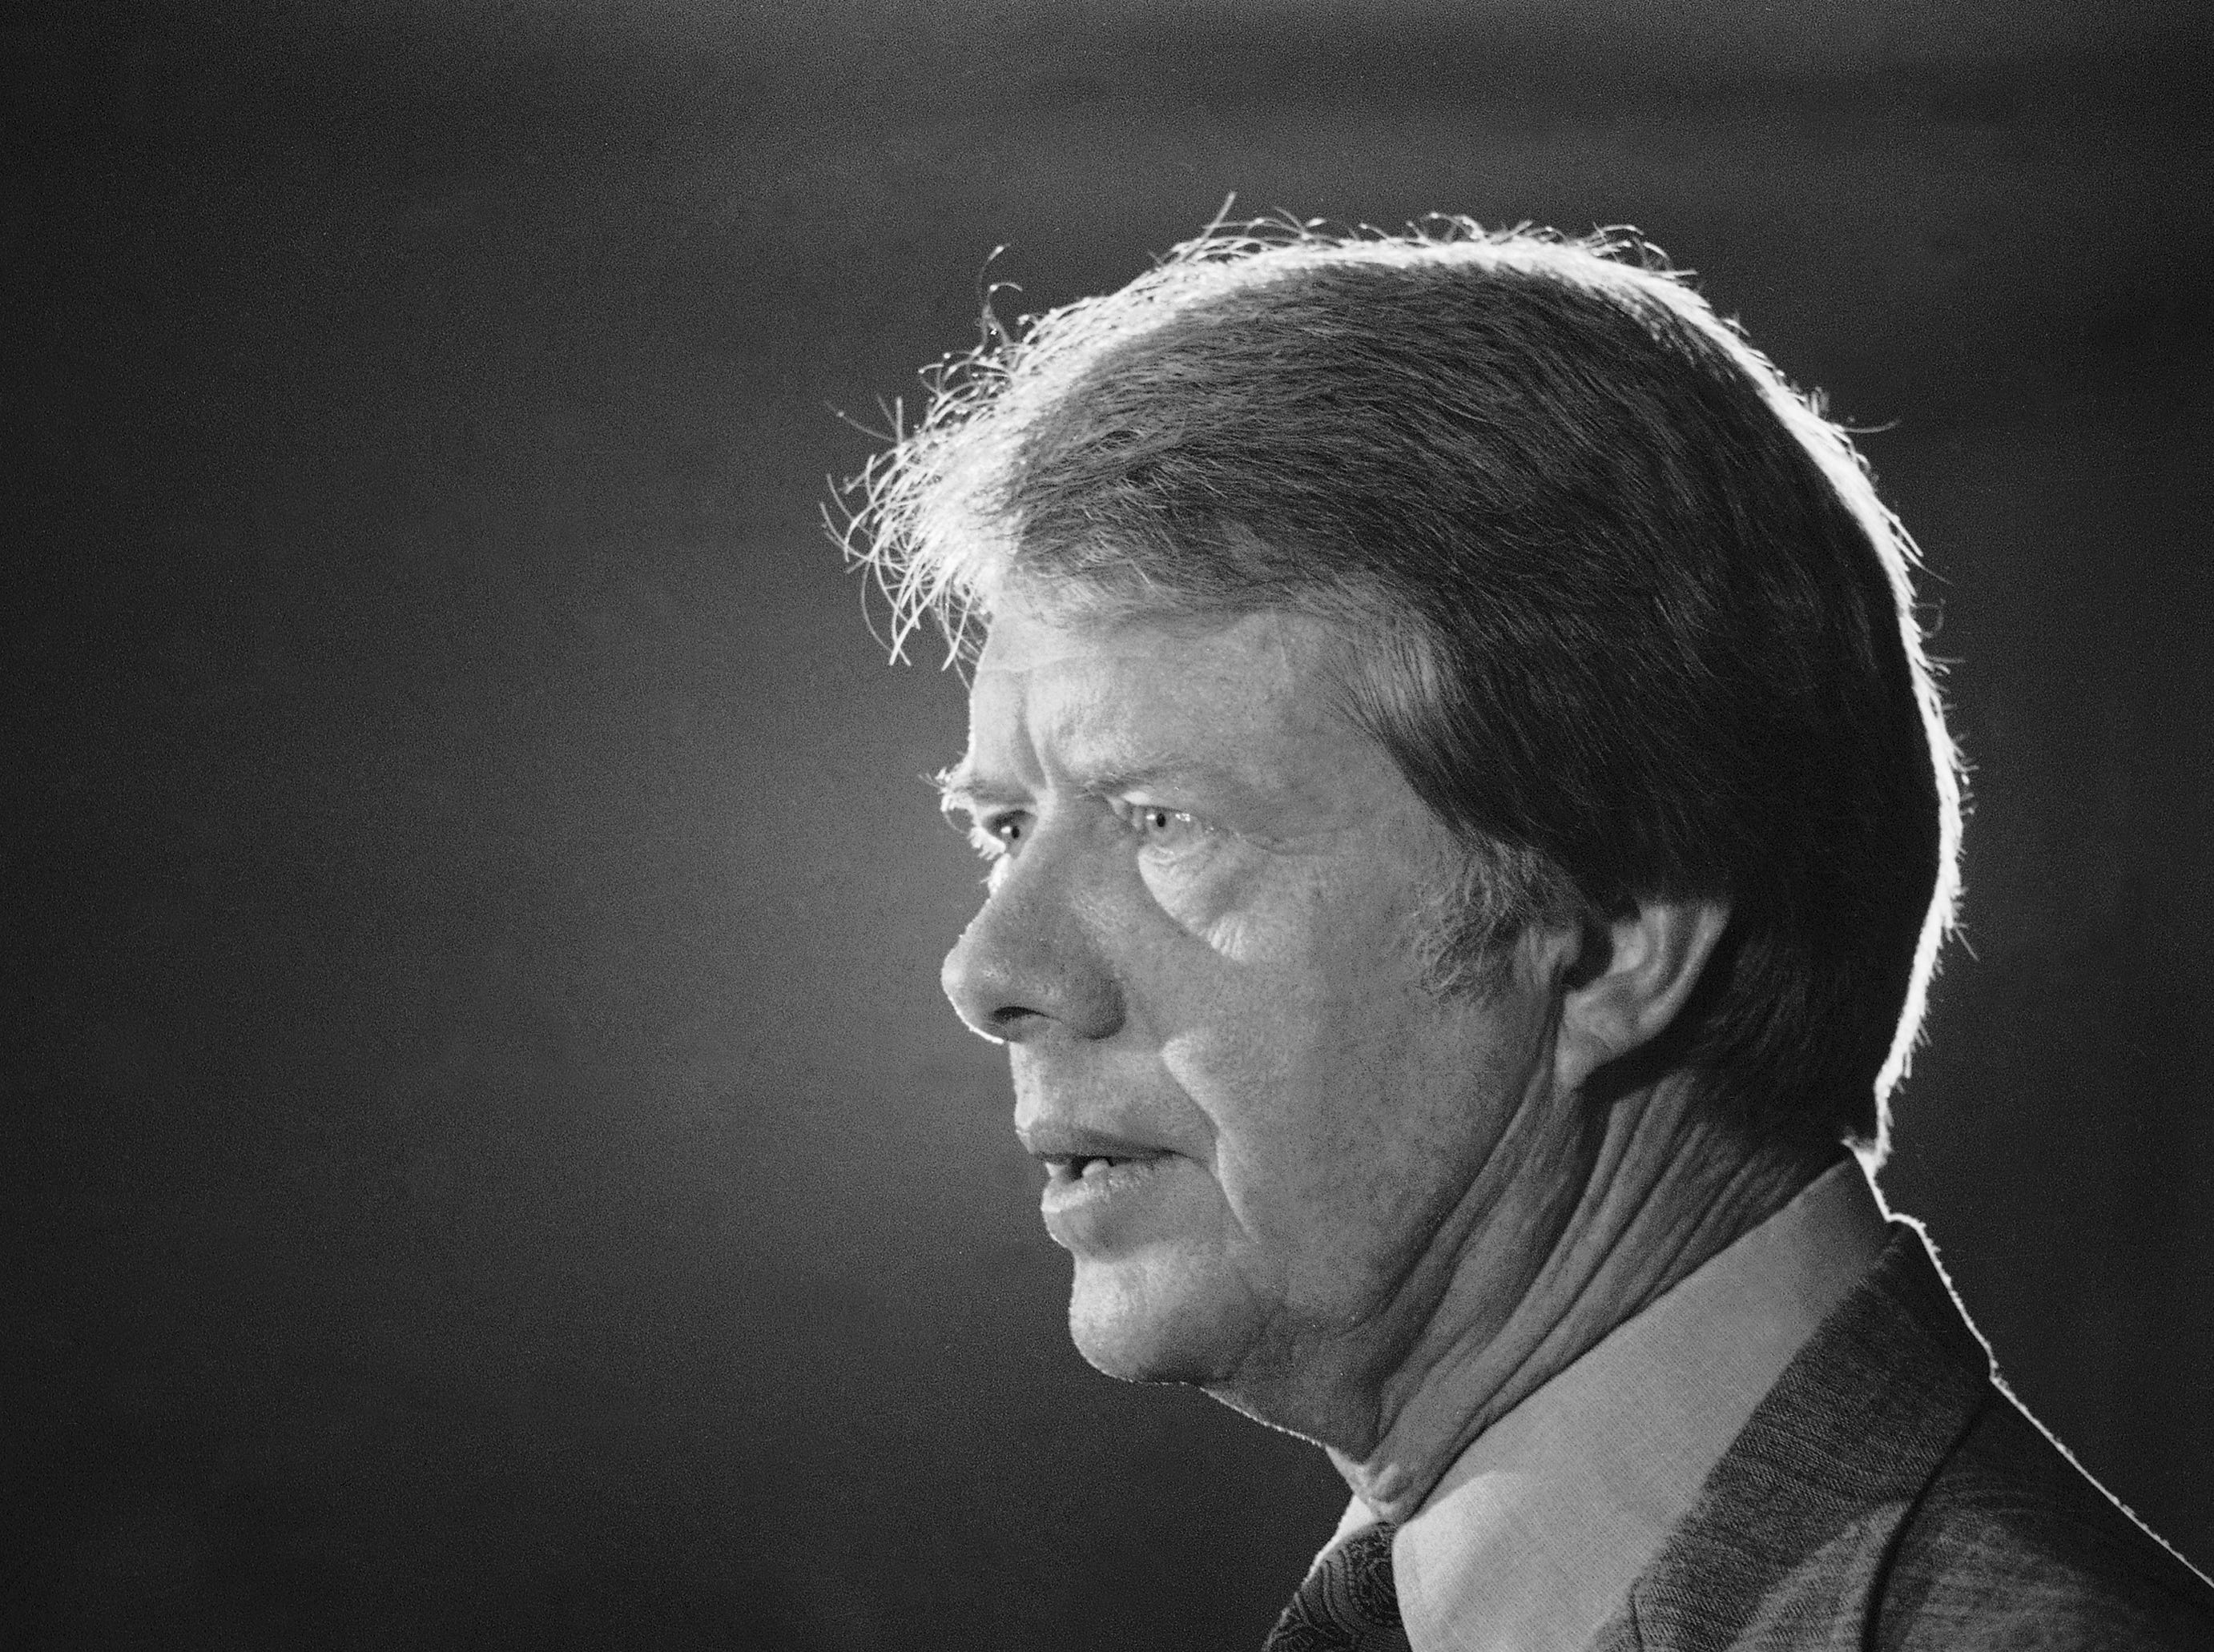 Jimmy Carter speaks at a Latino caucus in the Americana Hotel in New York, on July 14, 1976.